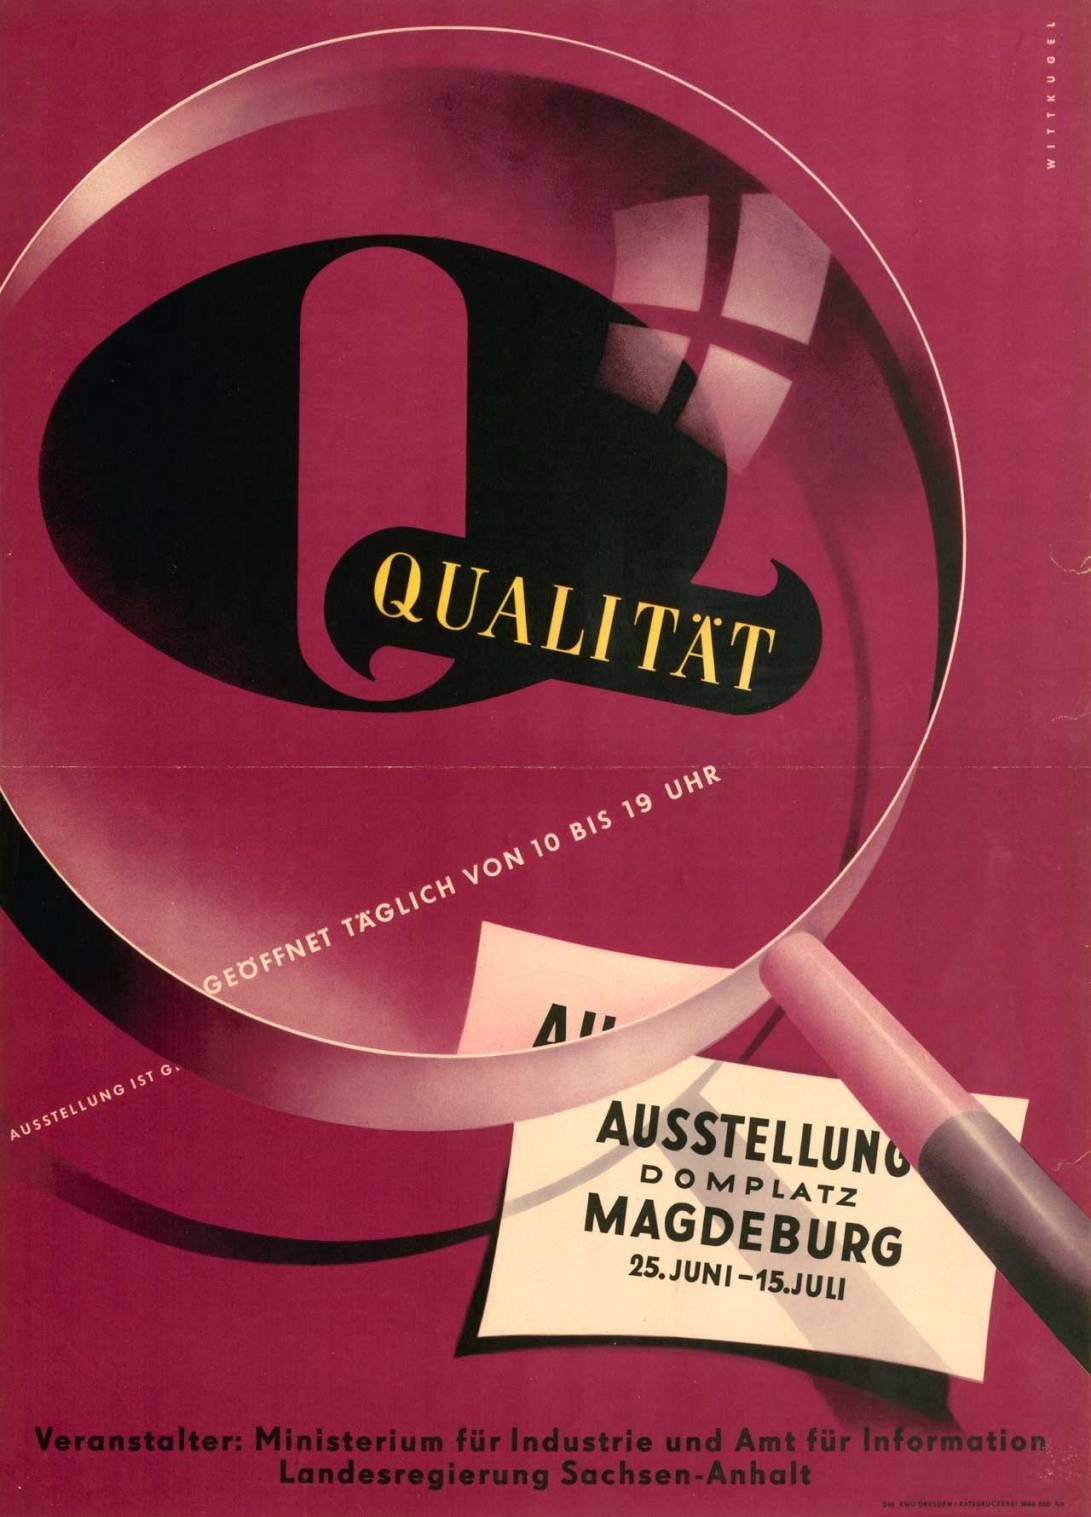 Wittkugel-1950-Qualitaet